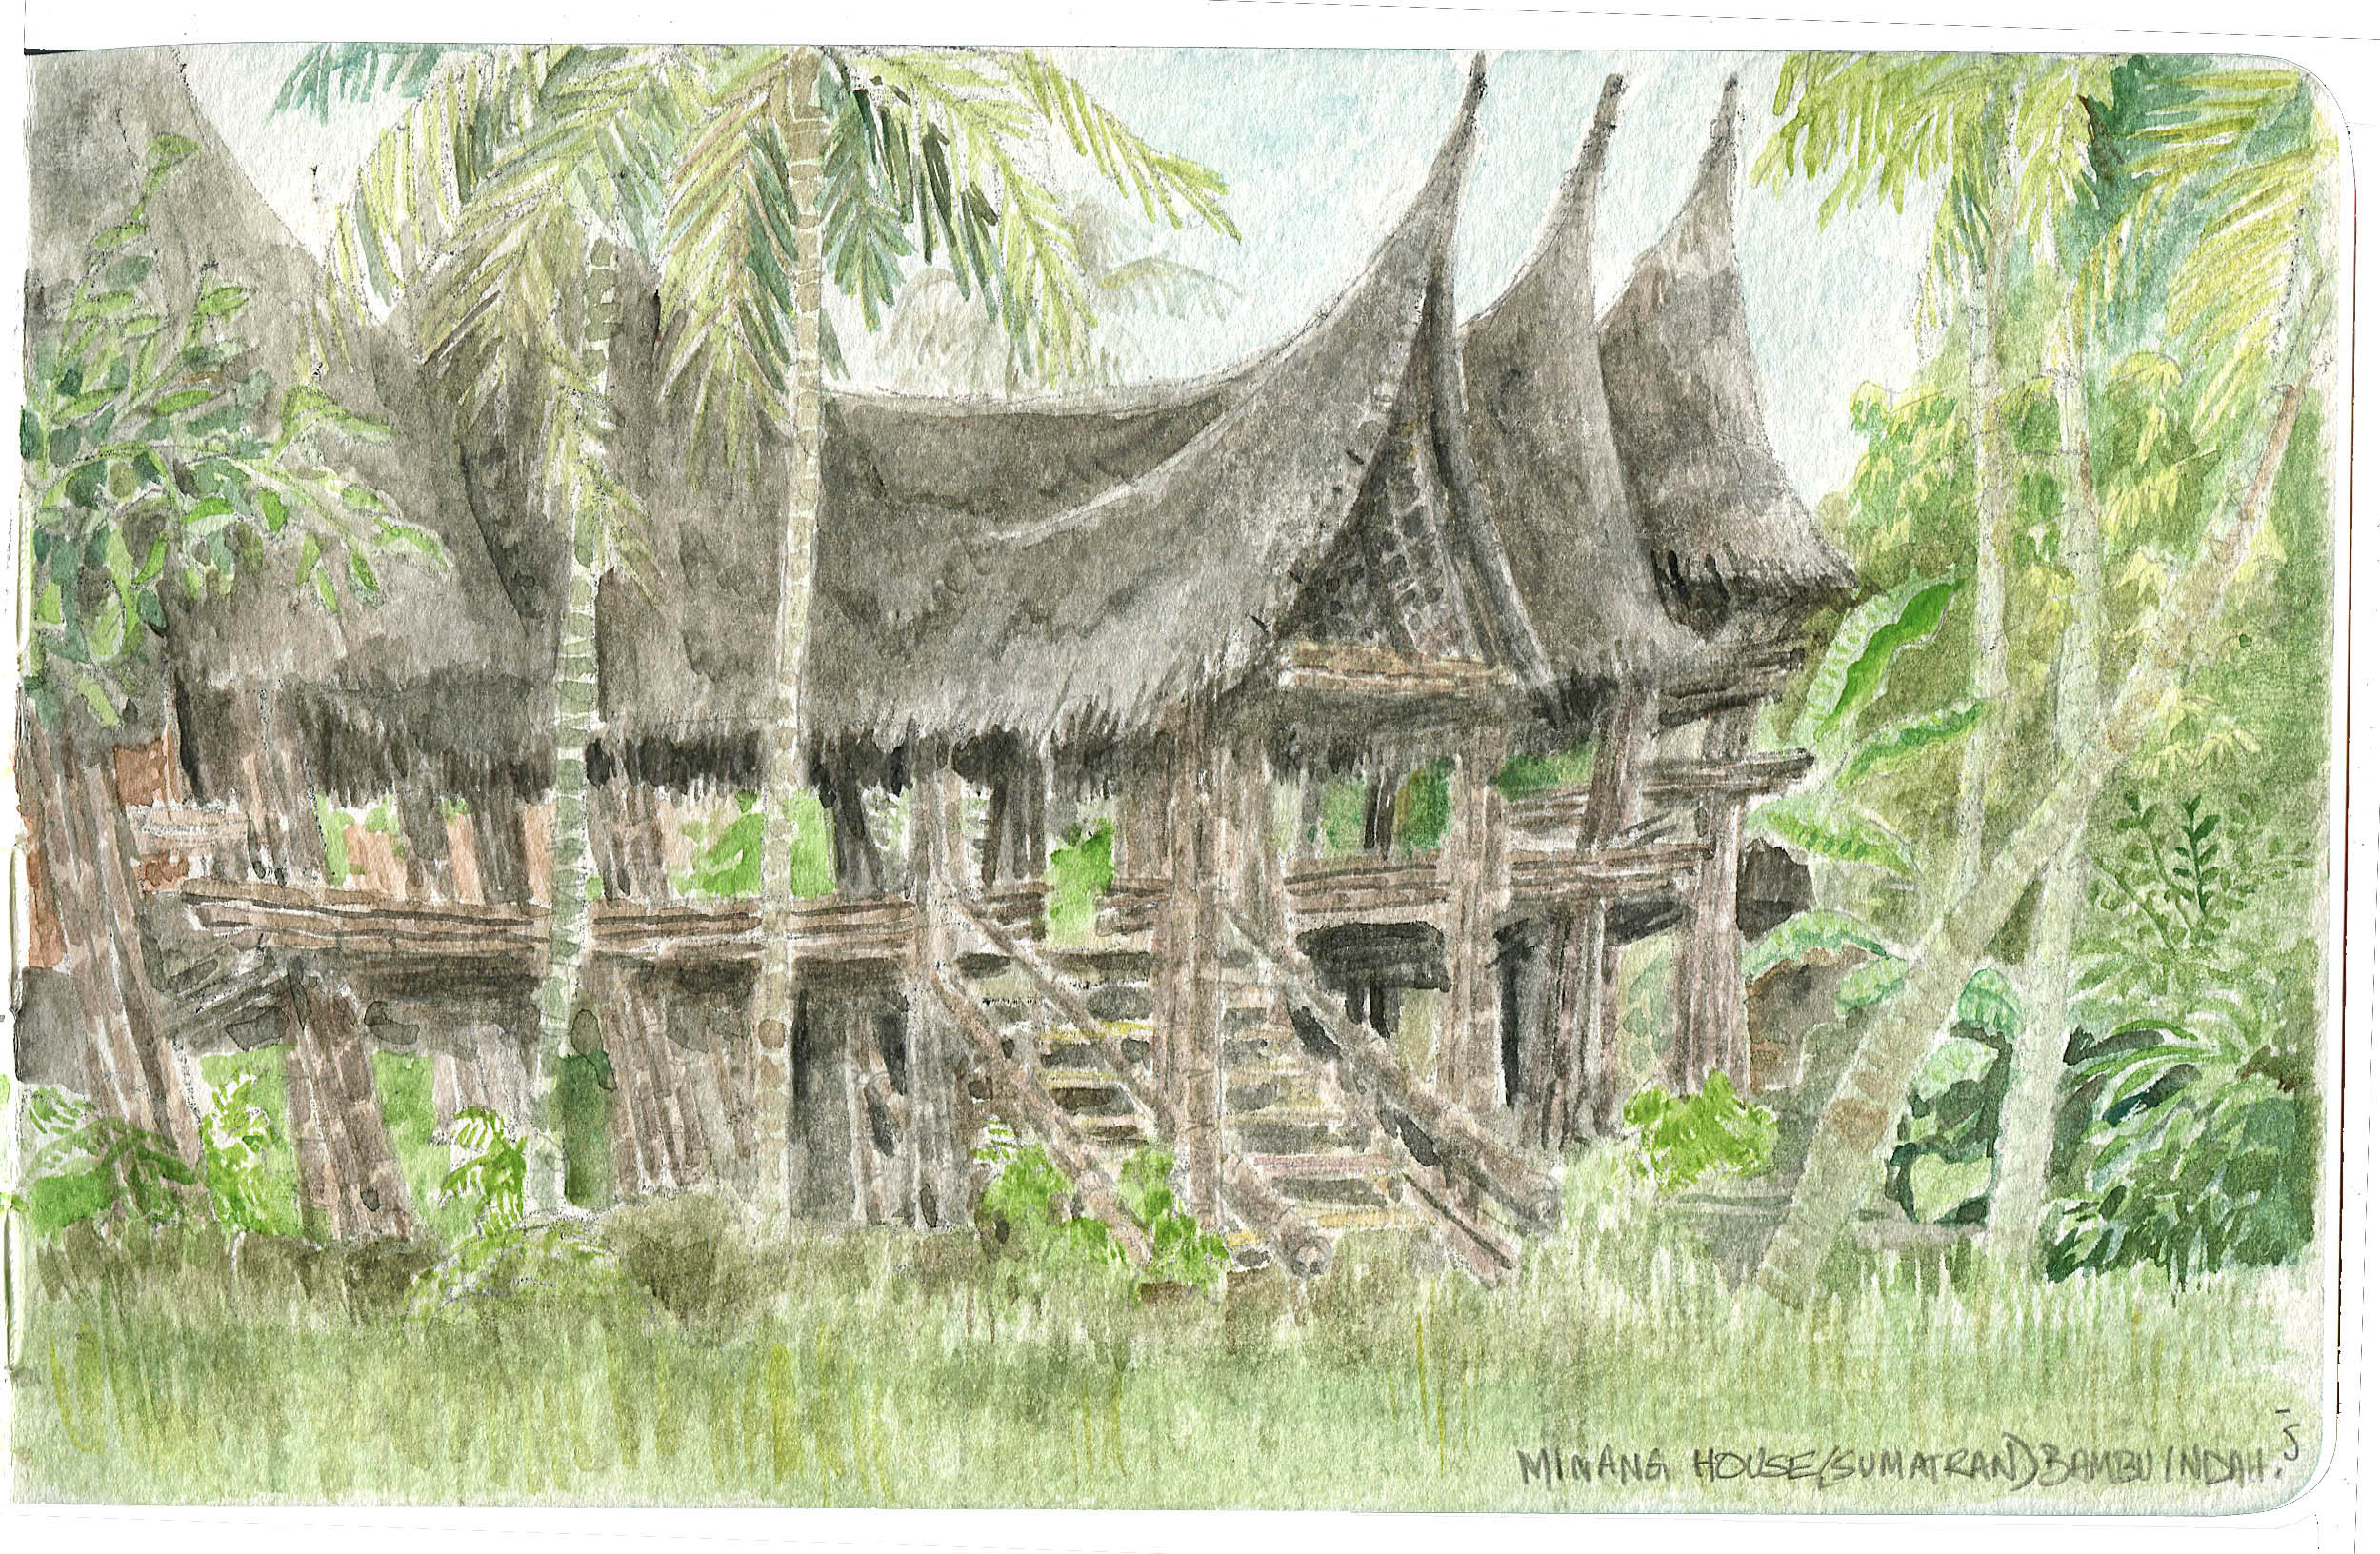 The Minang house, built to match the ones seen in Sumatra. Made out of gorgeous black bamboo.